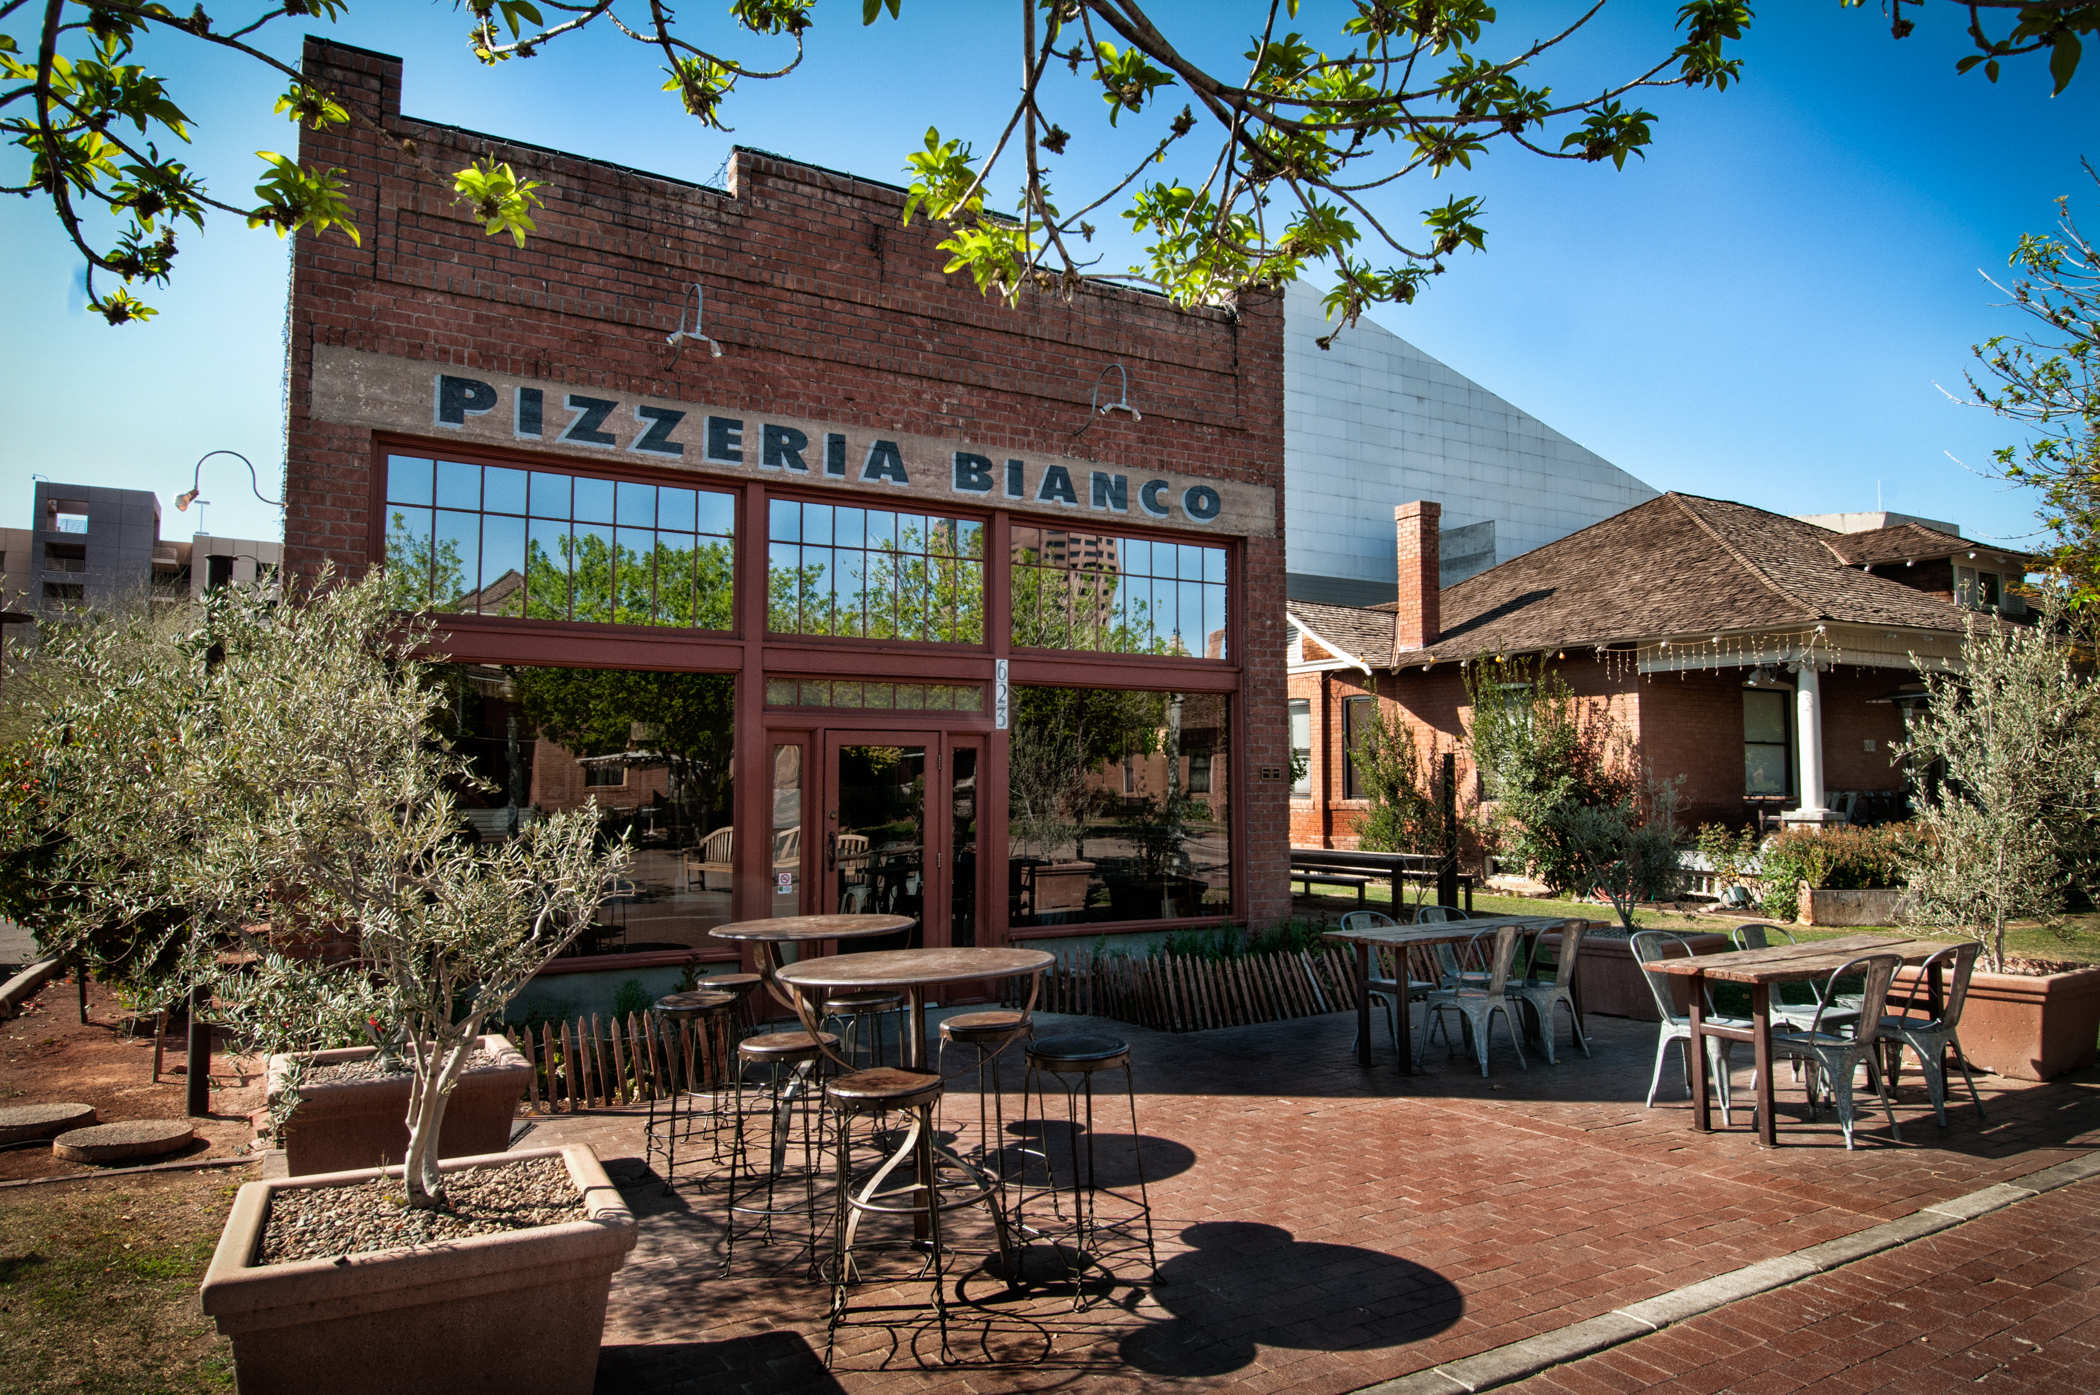 Pizzeria Bianco in Downtown Phoenix' Historic Heritage Square